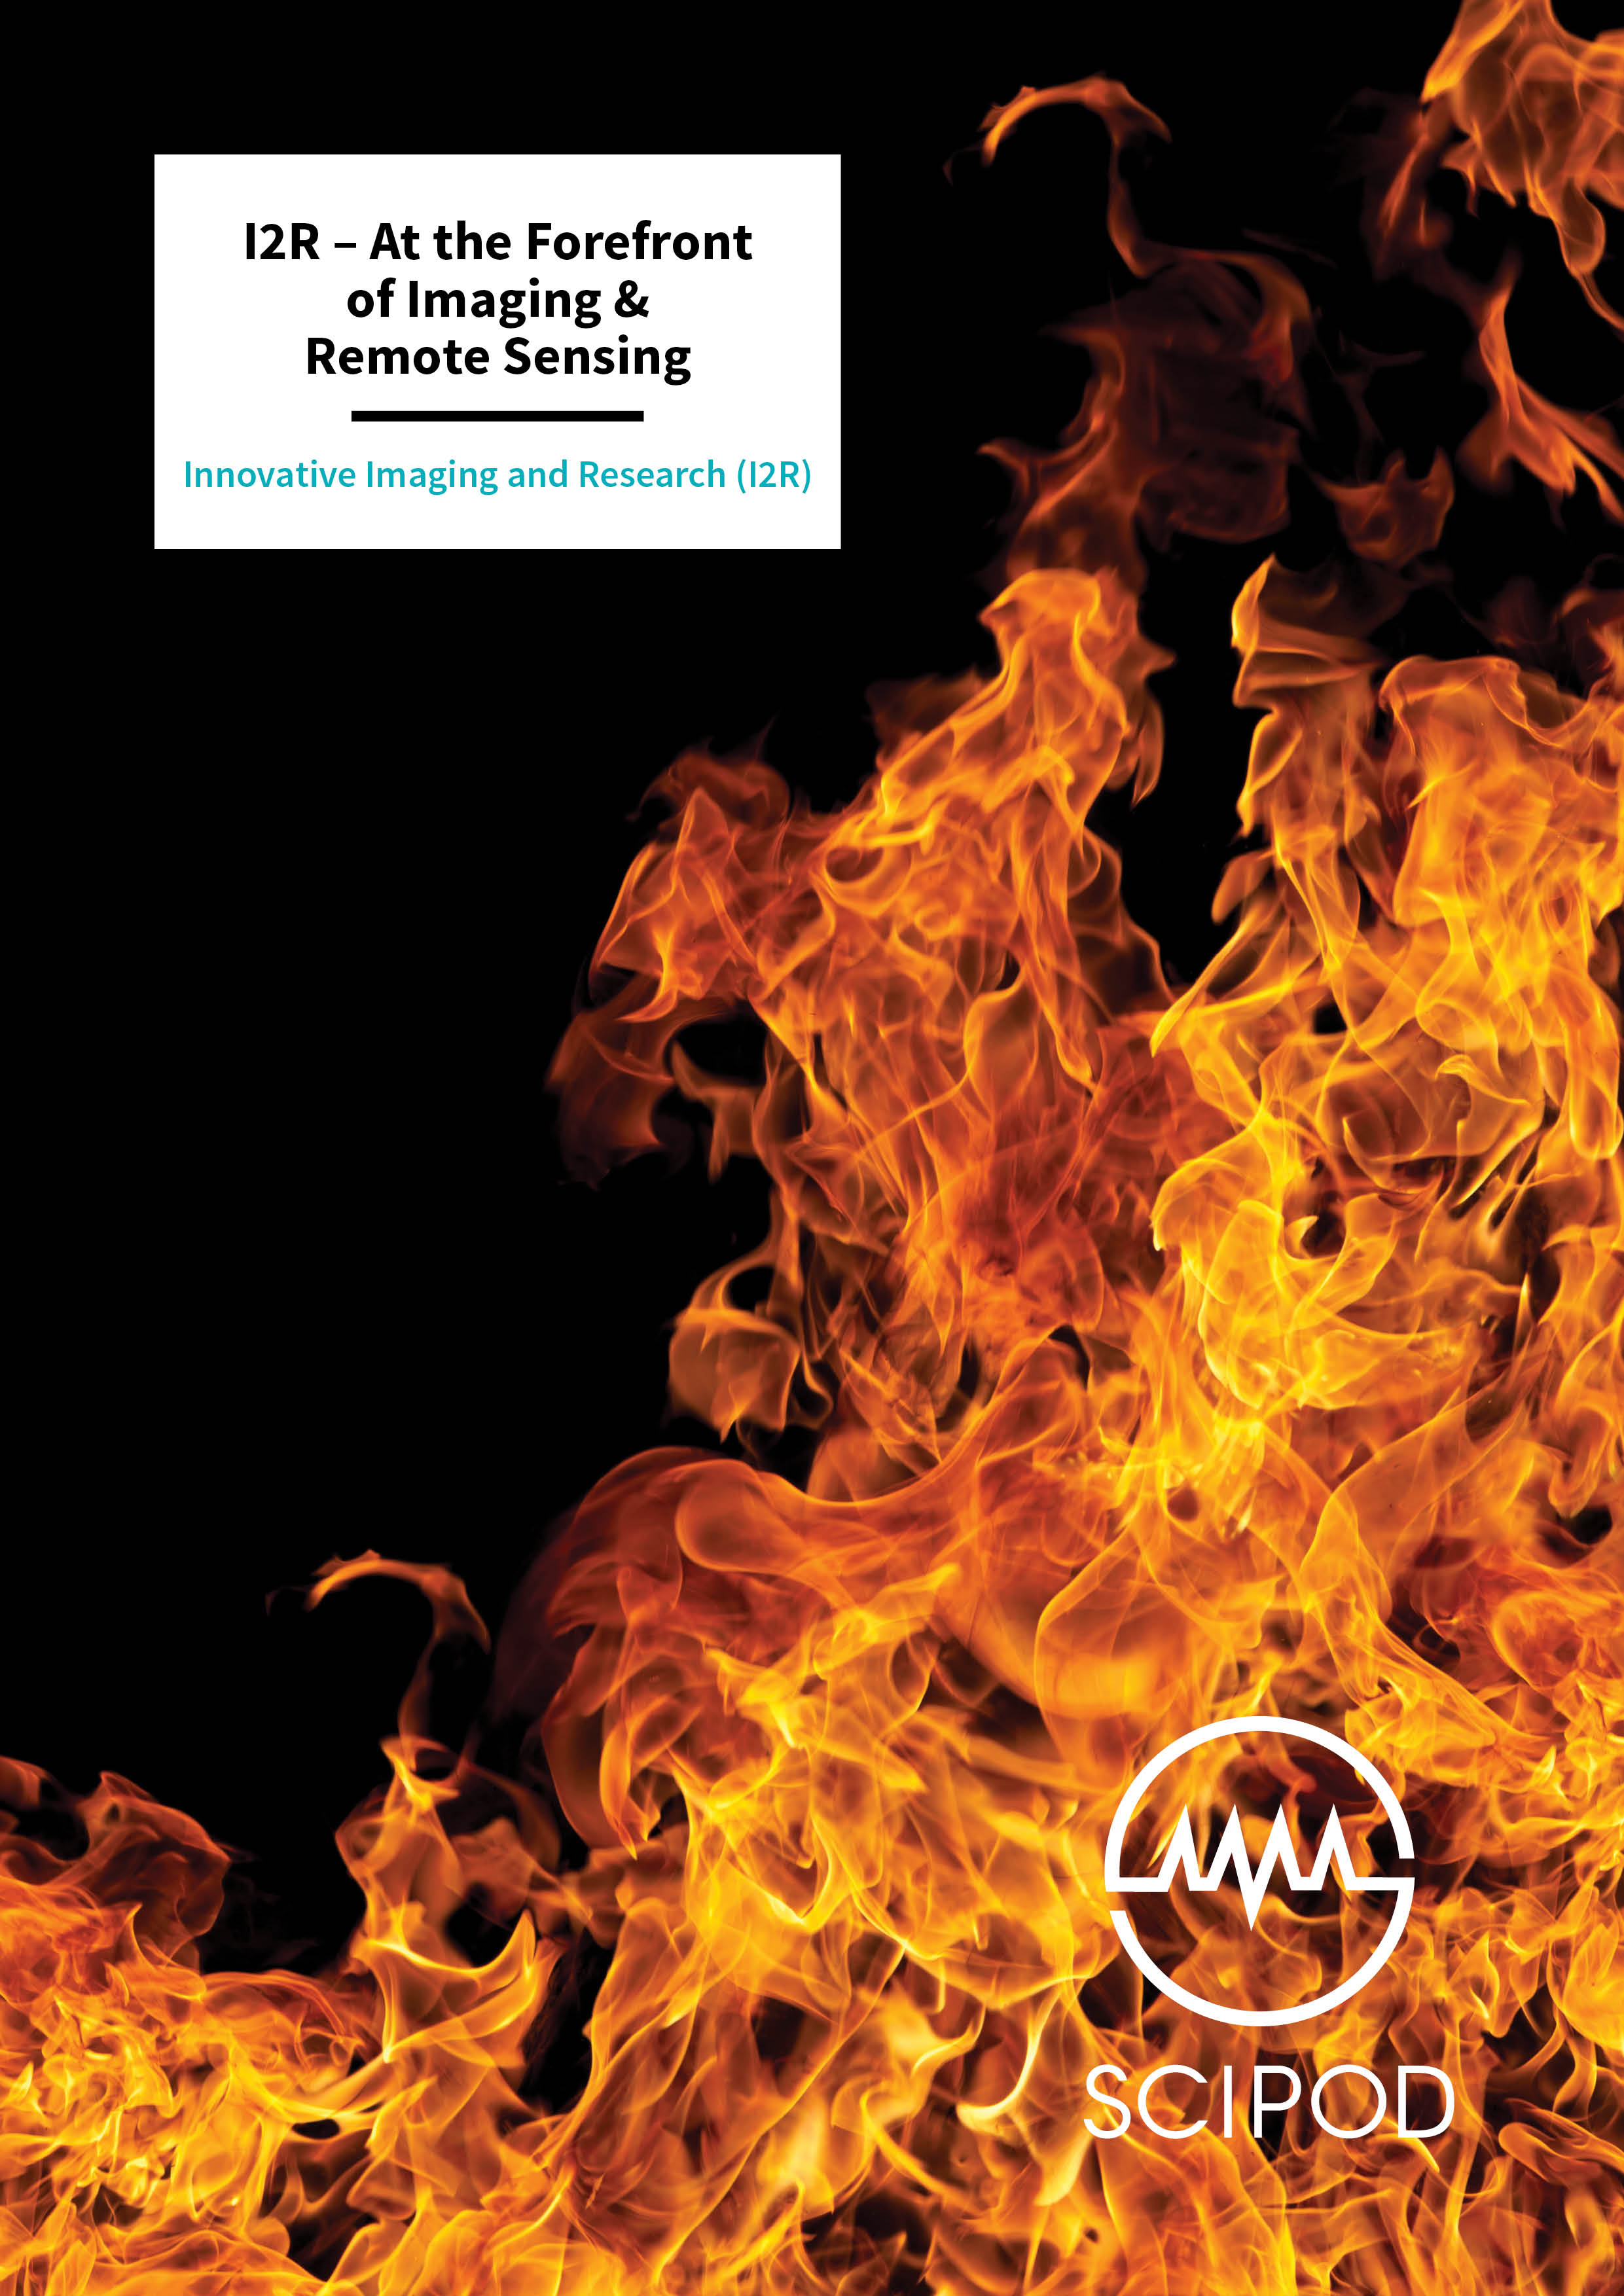 At the Forefront of Imaging & Remote Sensing – Innovative Imaging and Research (I2R)